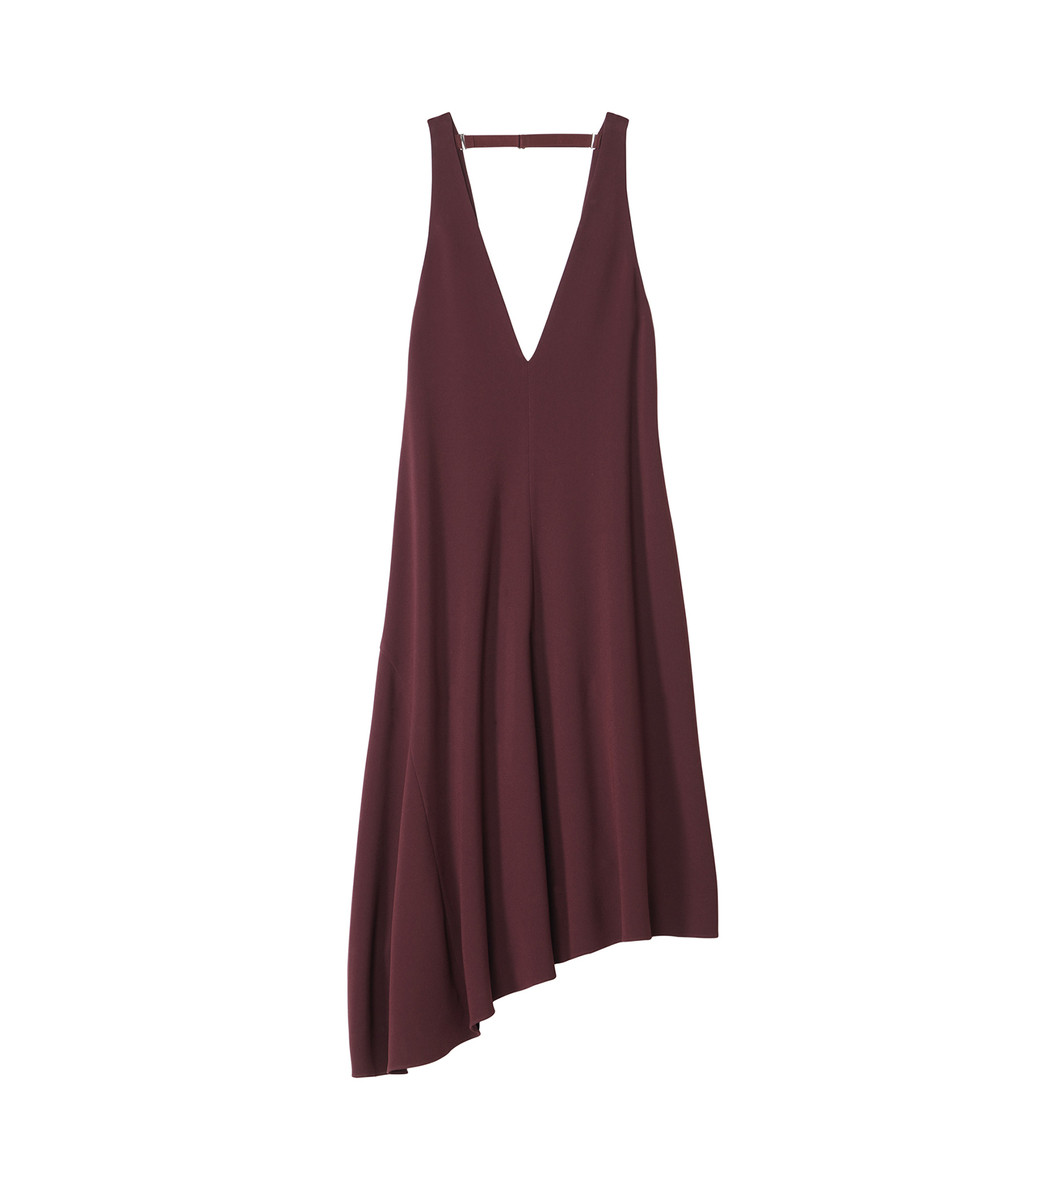 Dark Currant Triacetate V-Neck Draped Jumper in Burgundy